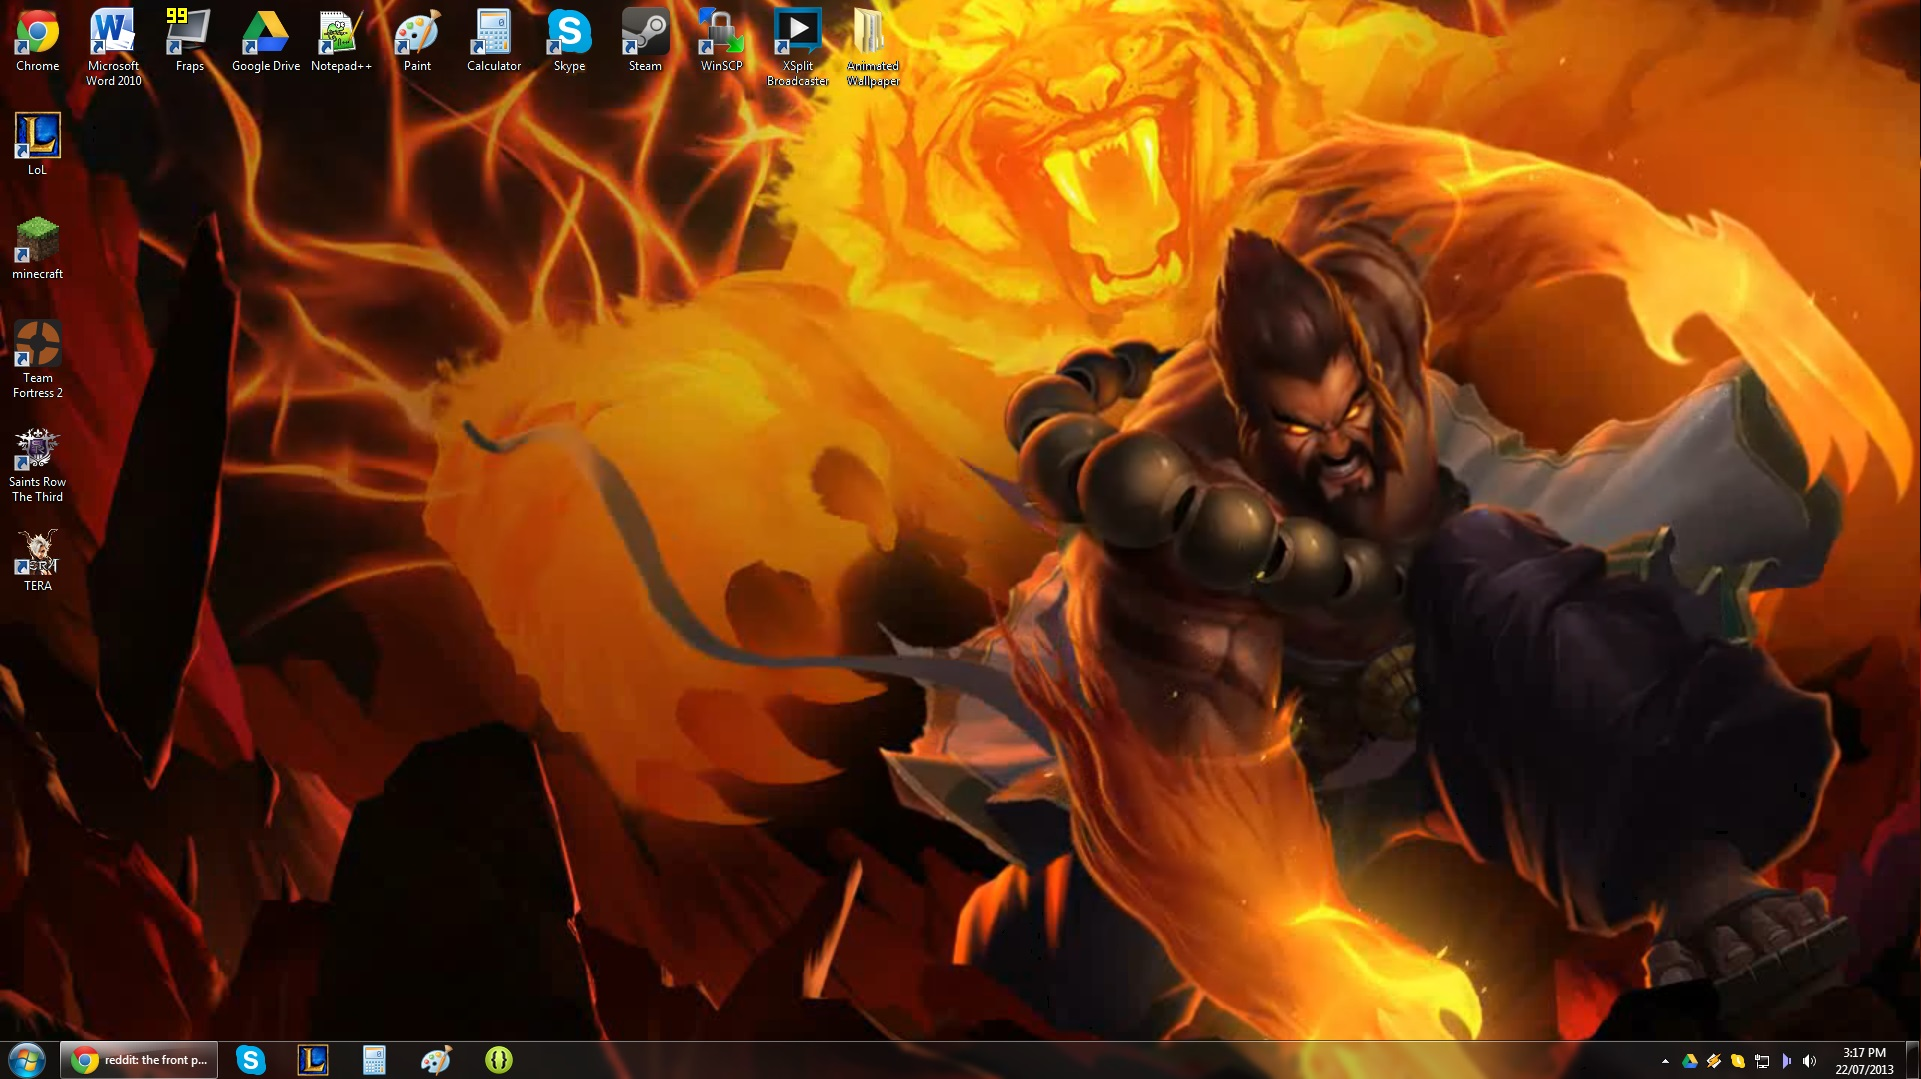 3d Moving Wallpapers For Windows 8 Free Download Download League Of Legends Live Wallpaper For Pc Gallery